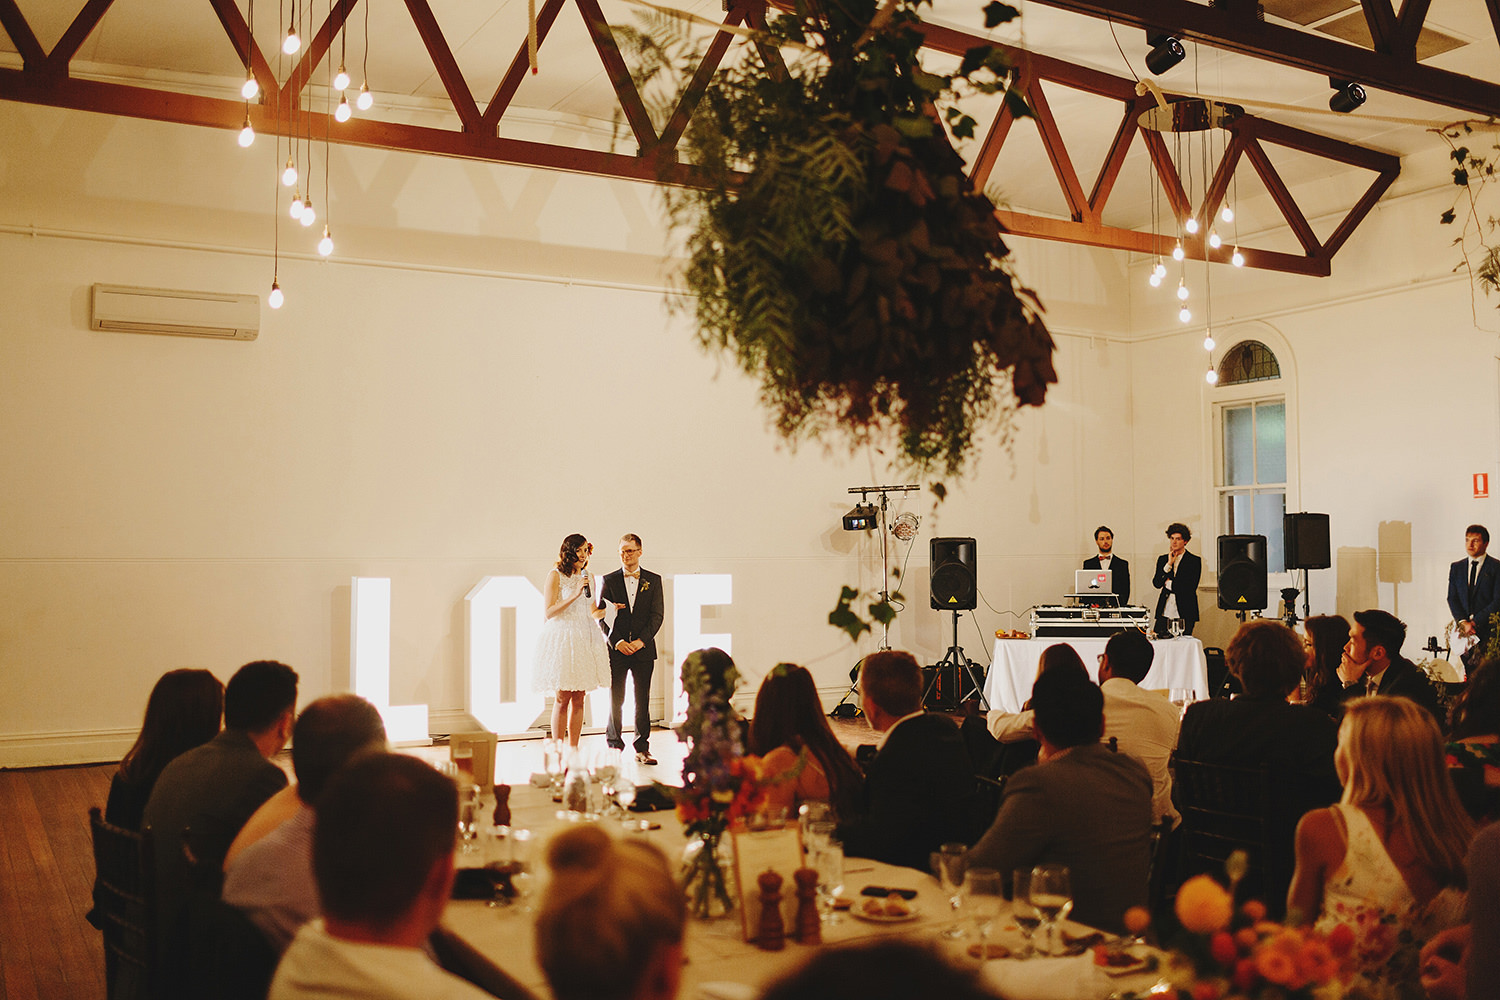 Melbourne_Garden_Wedding_Nick_Kim151.JPG